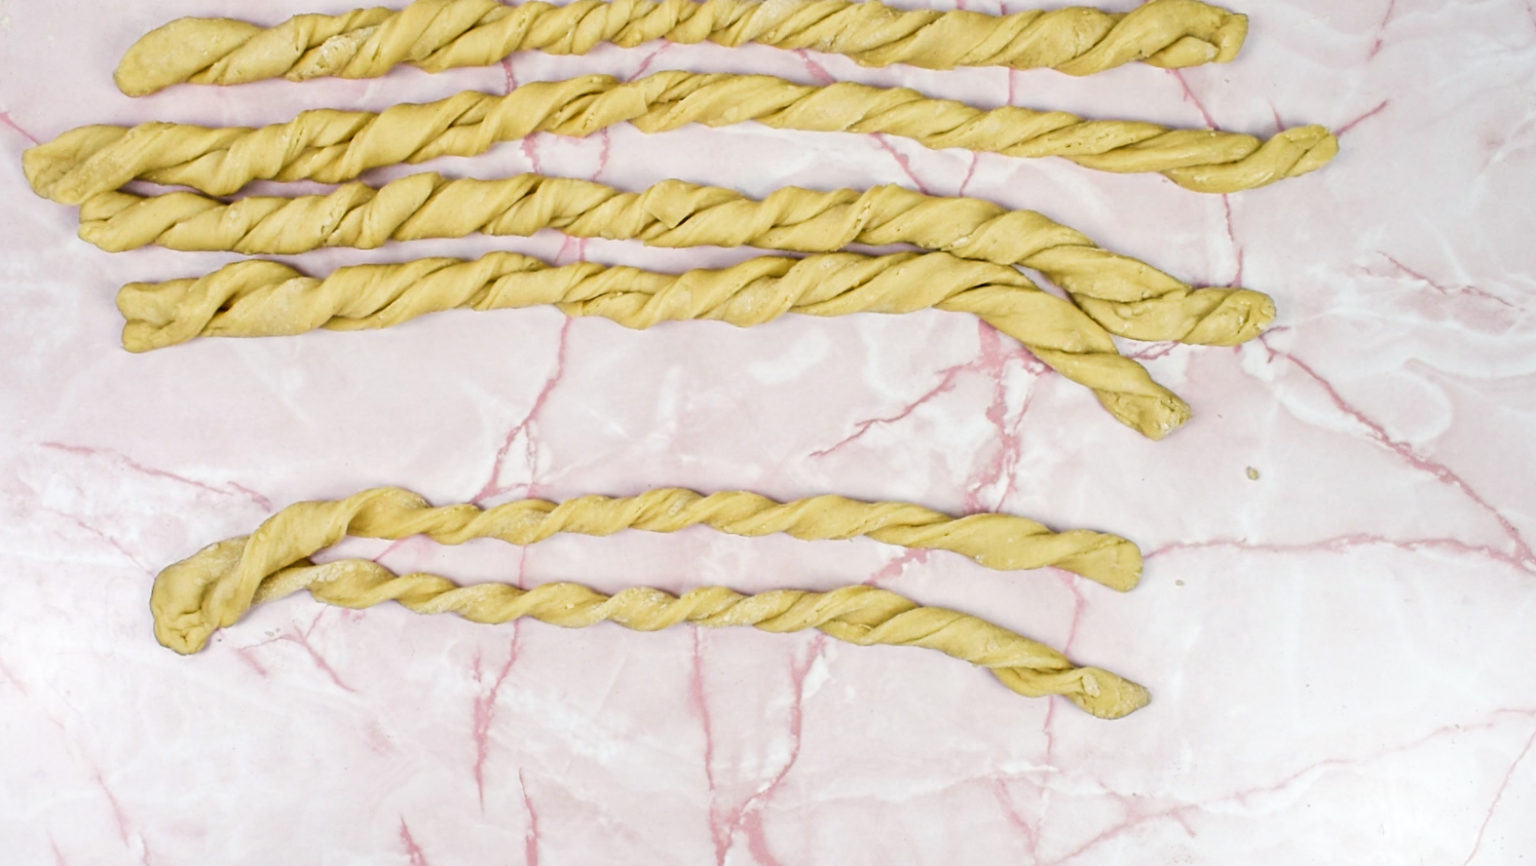 Each strip of dough twisted around itself